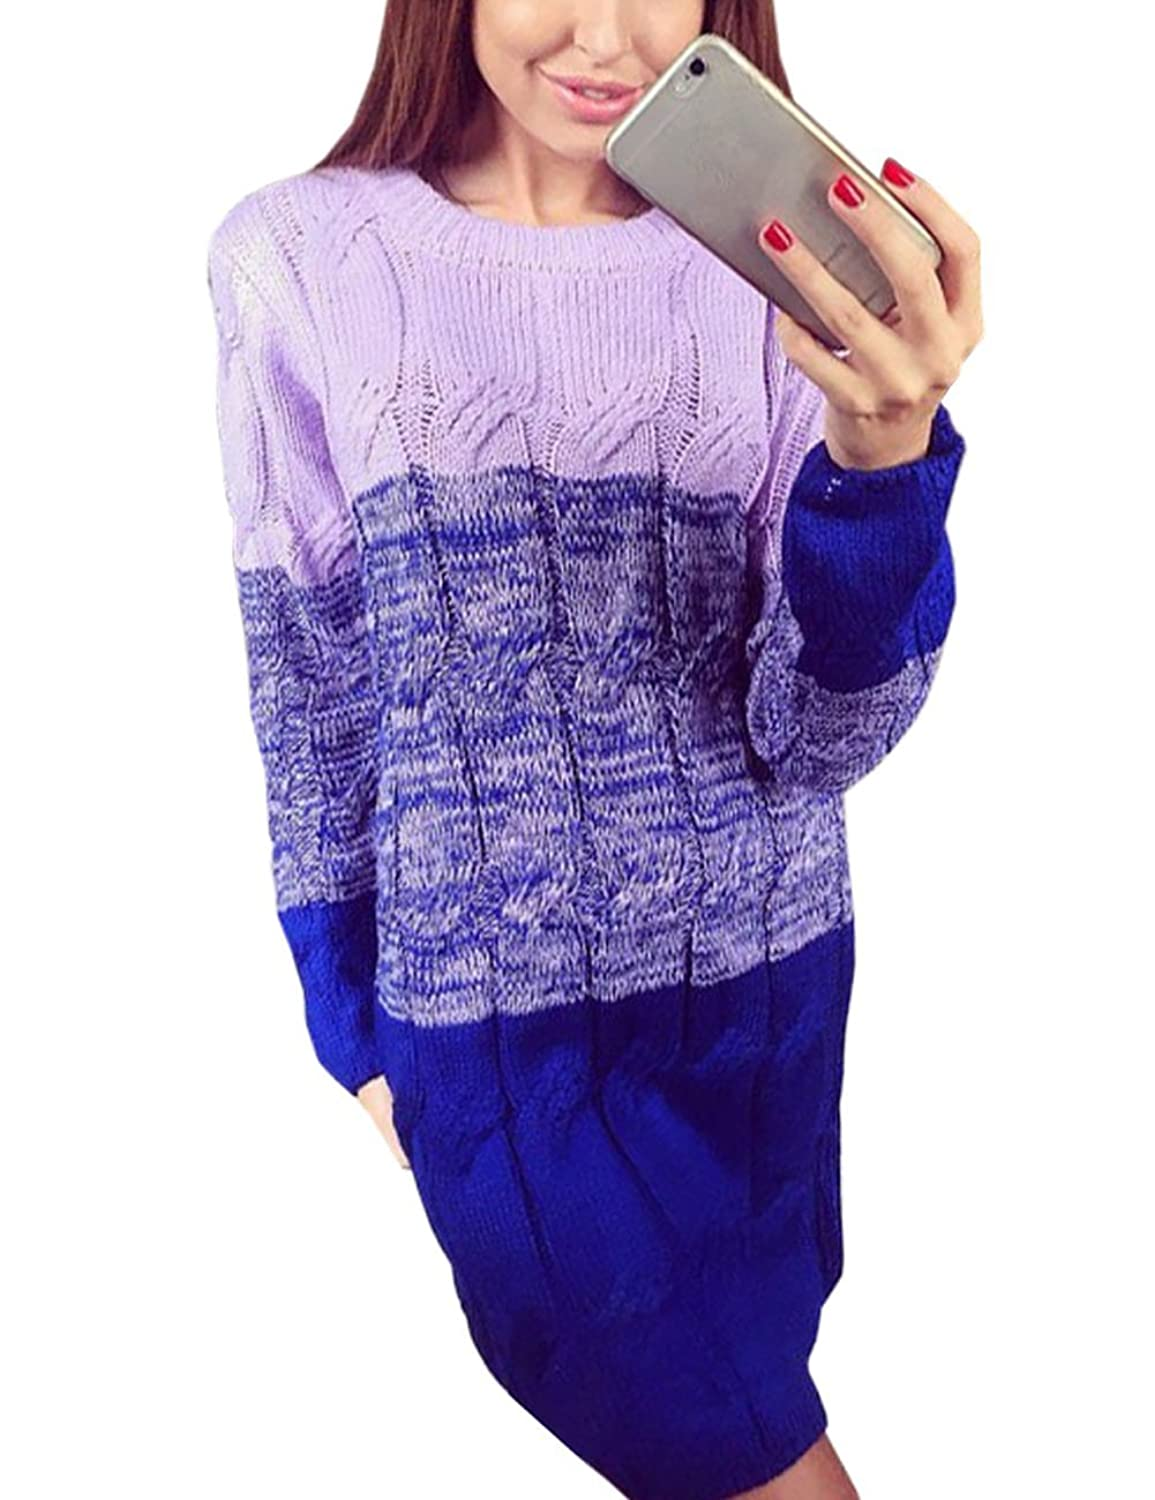 YOLLmart Women's Cable Chunky Knitted Long Sleeves Cardigans Sweater Coat Pullover